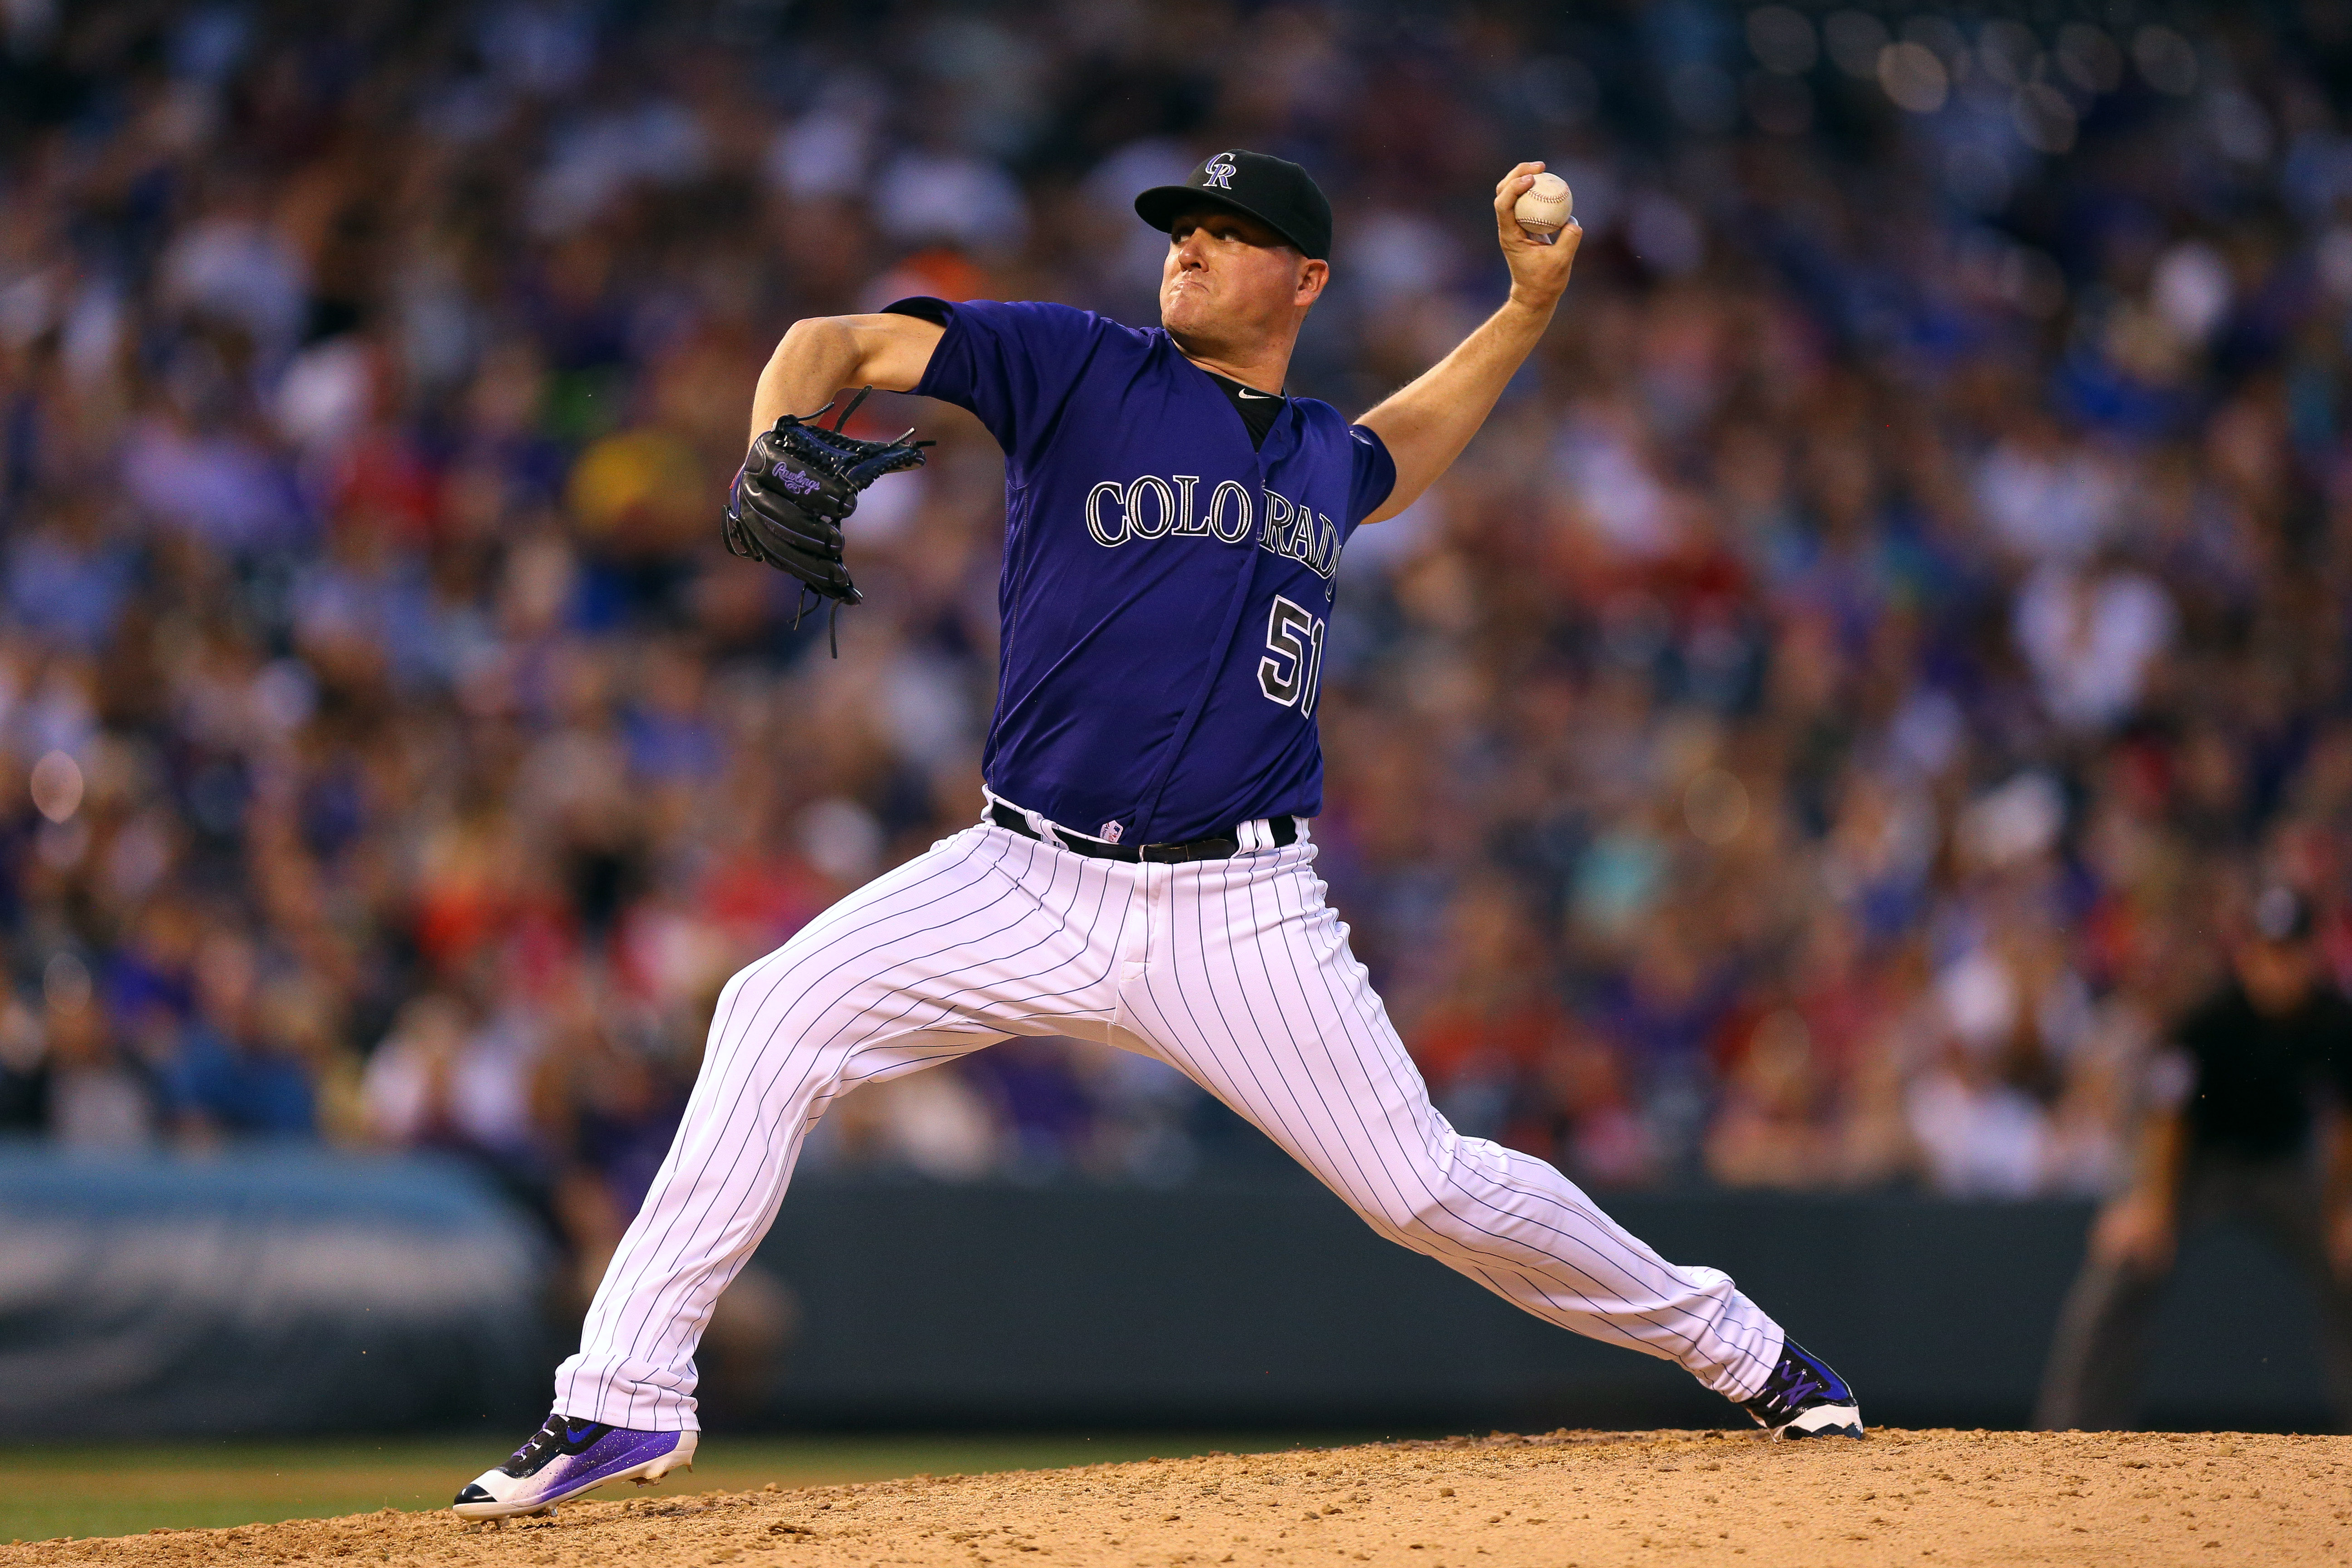 Relief pitcher Jake McGee #51 of the Colorado Rockies delivers to home plate during the seventh inning against the Philadelphia Phillies at Coors Field on July 8, 2016 in Denver, Colorado. (Photo by Justin Edmonds/Getty Images)